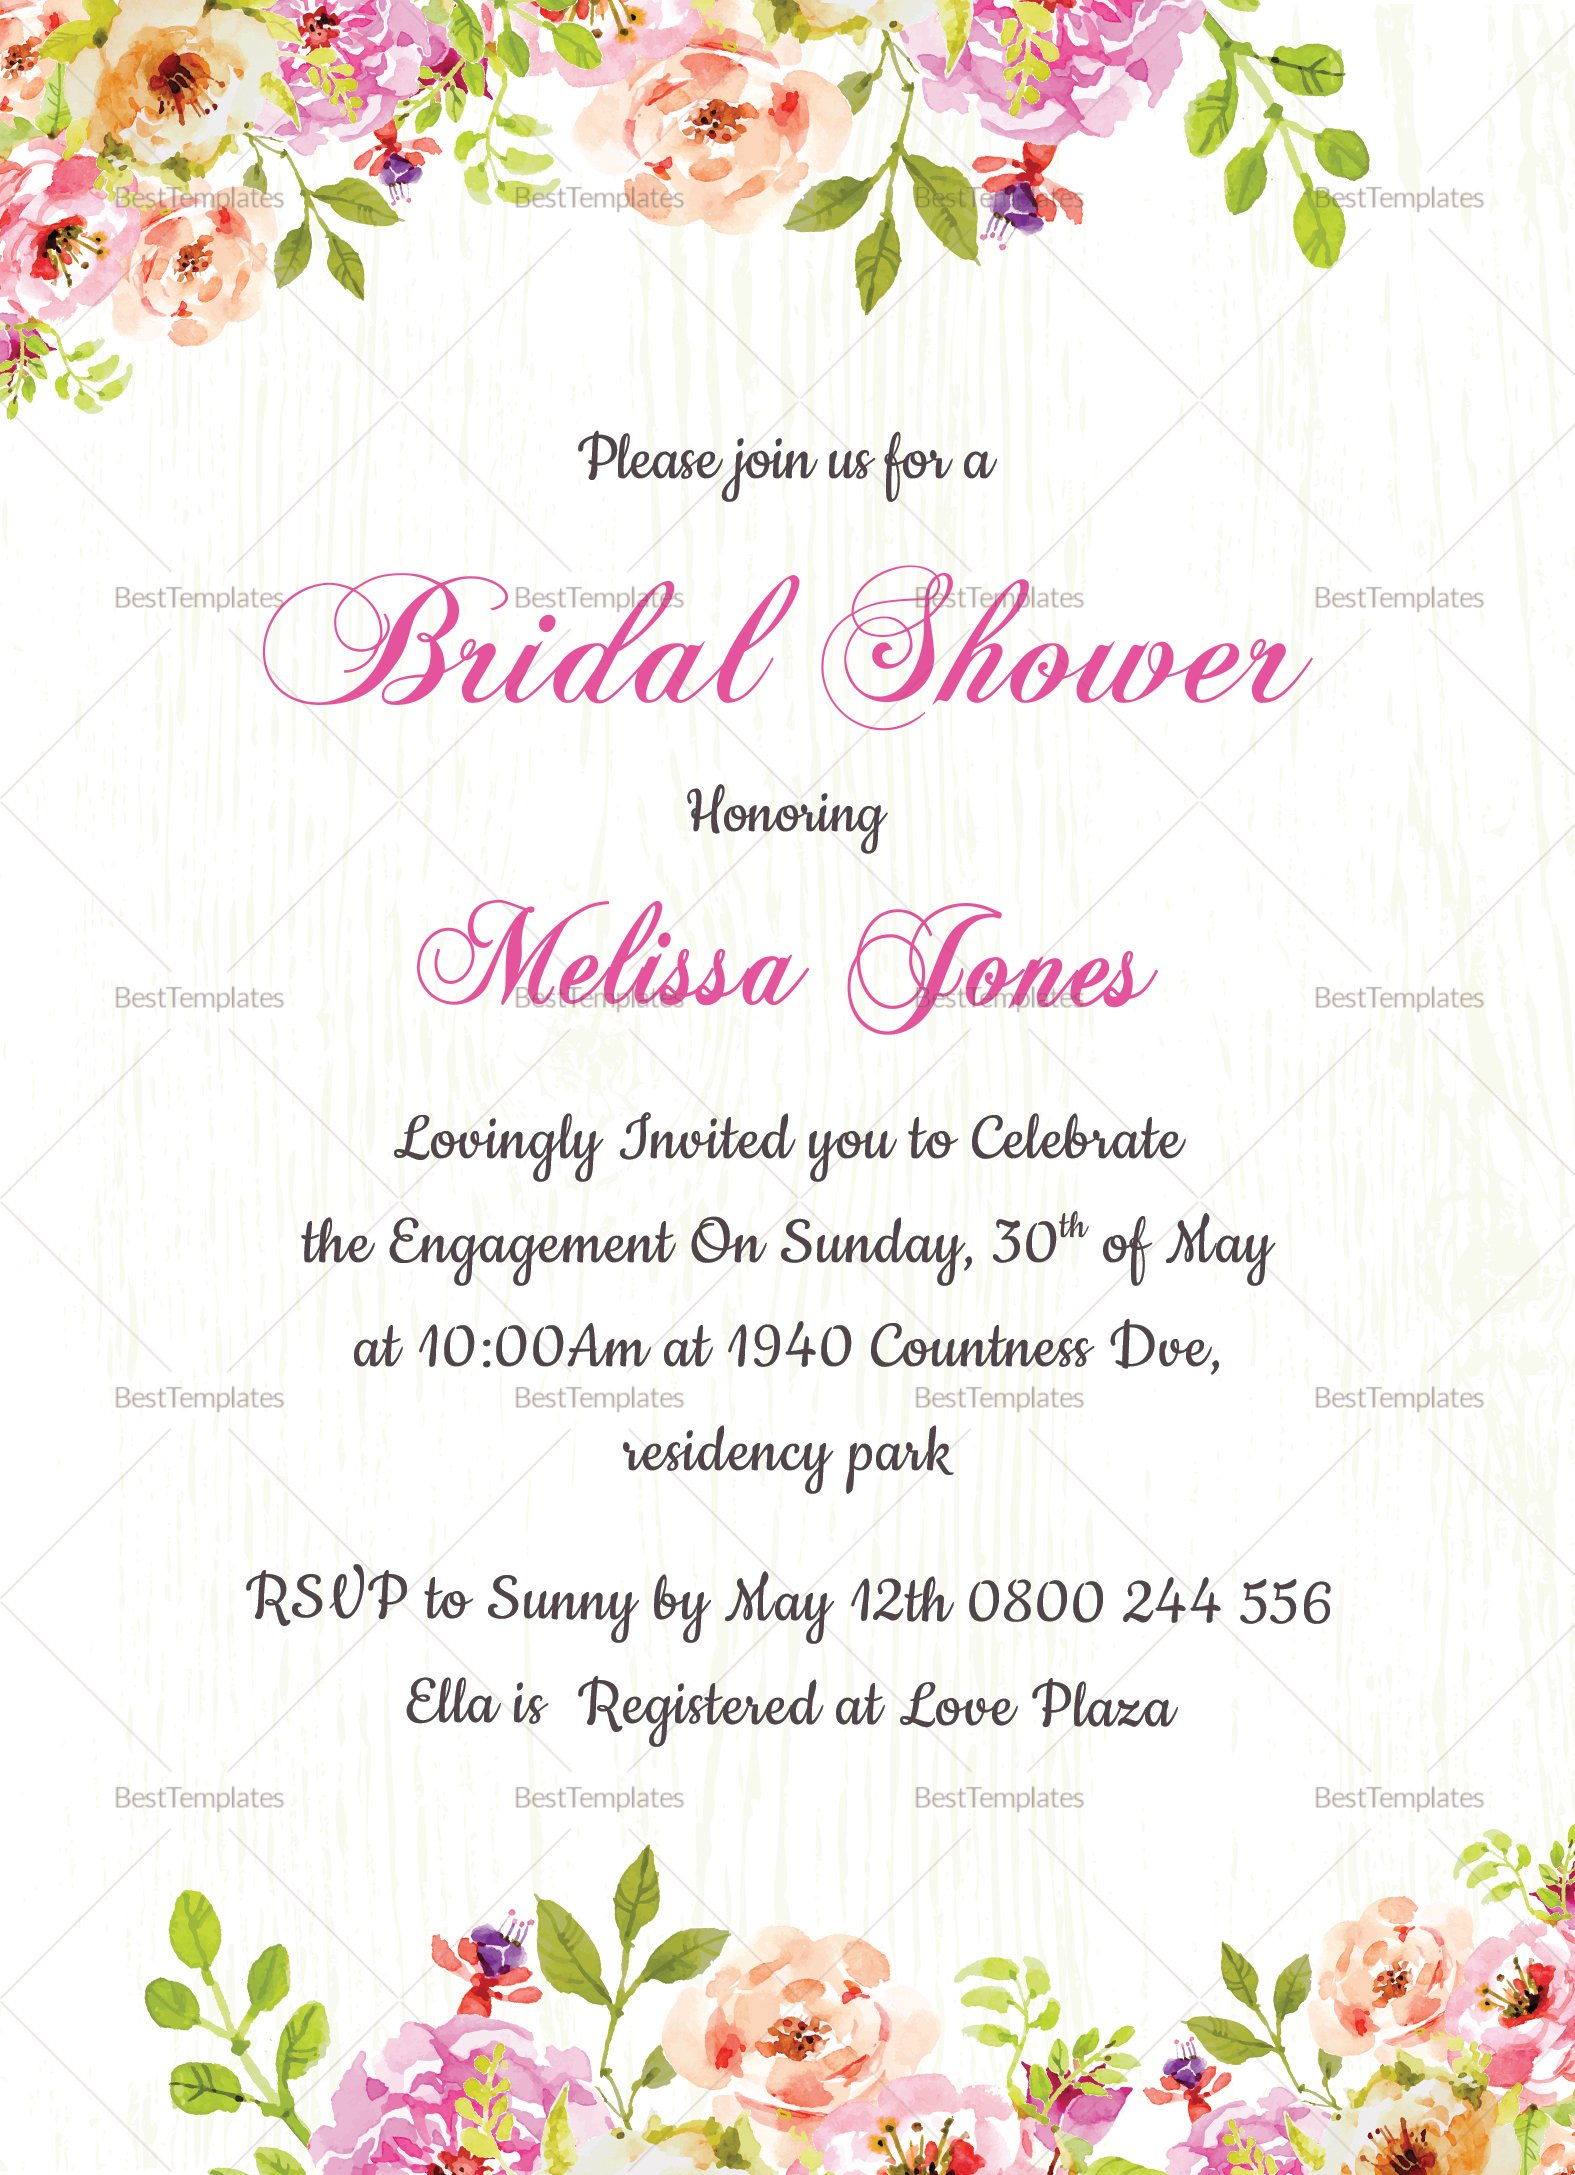 Floral Bridal Shower Invitation Design Template